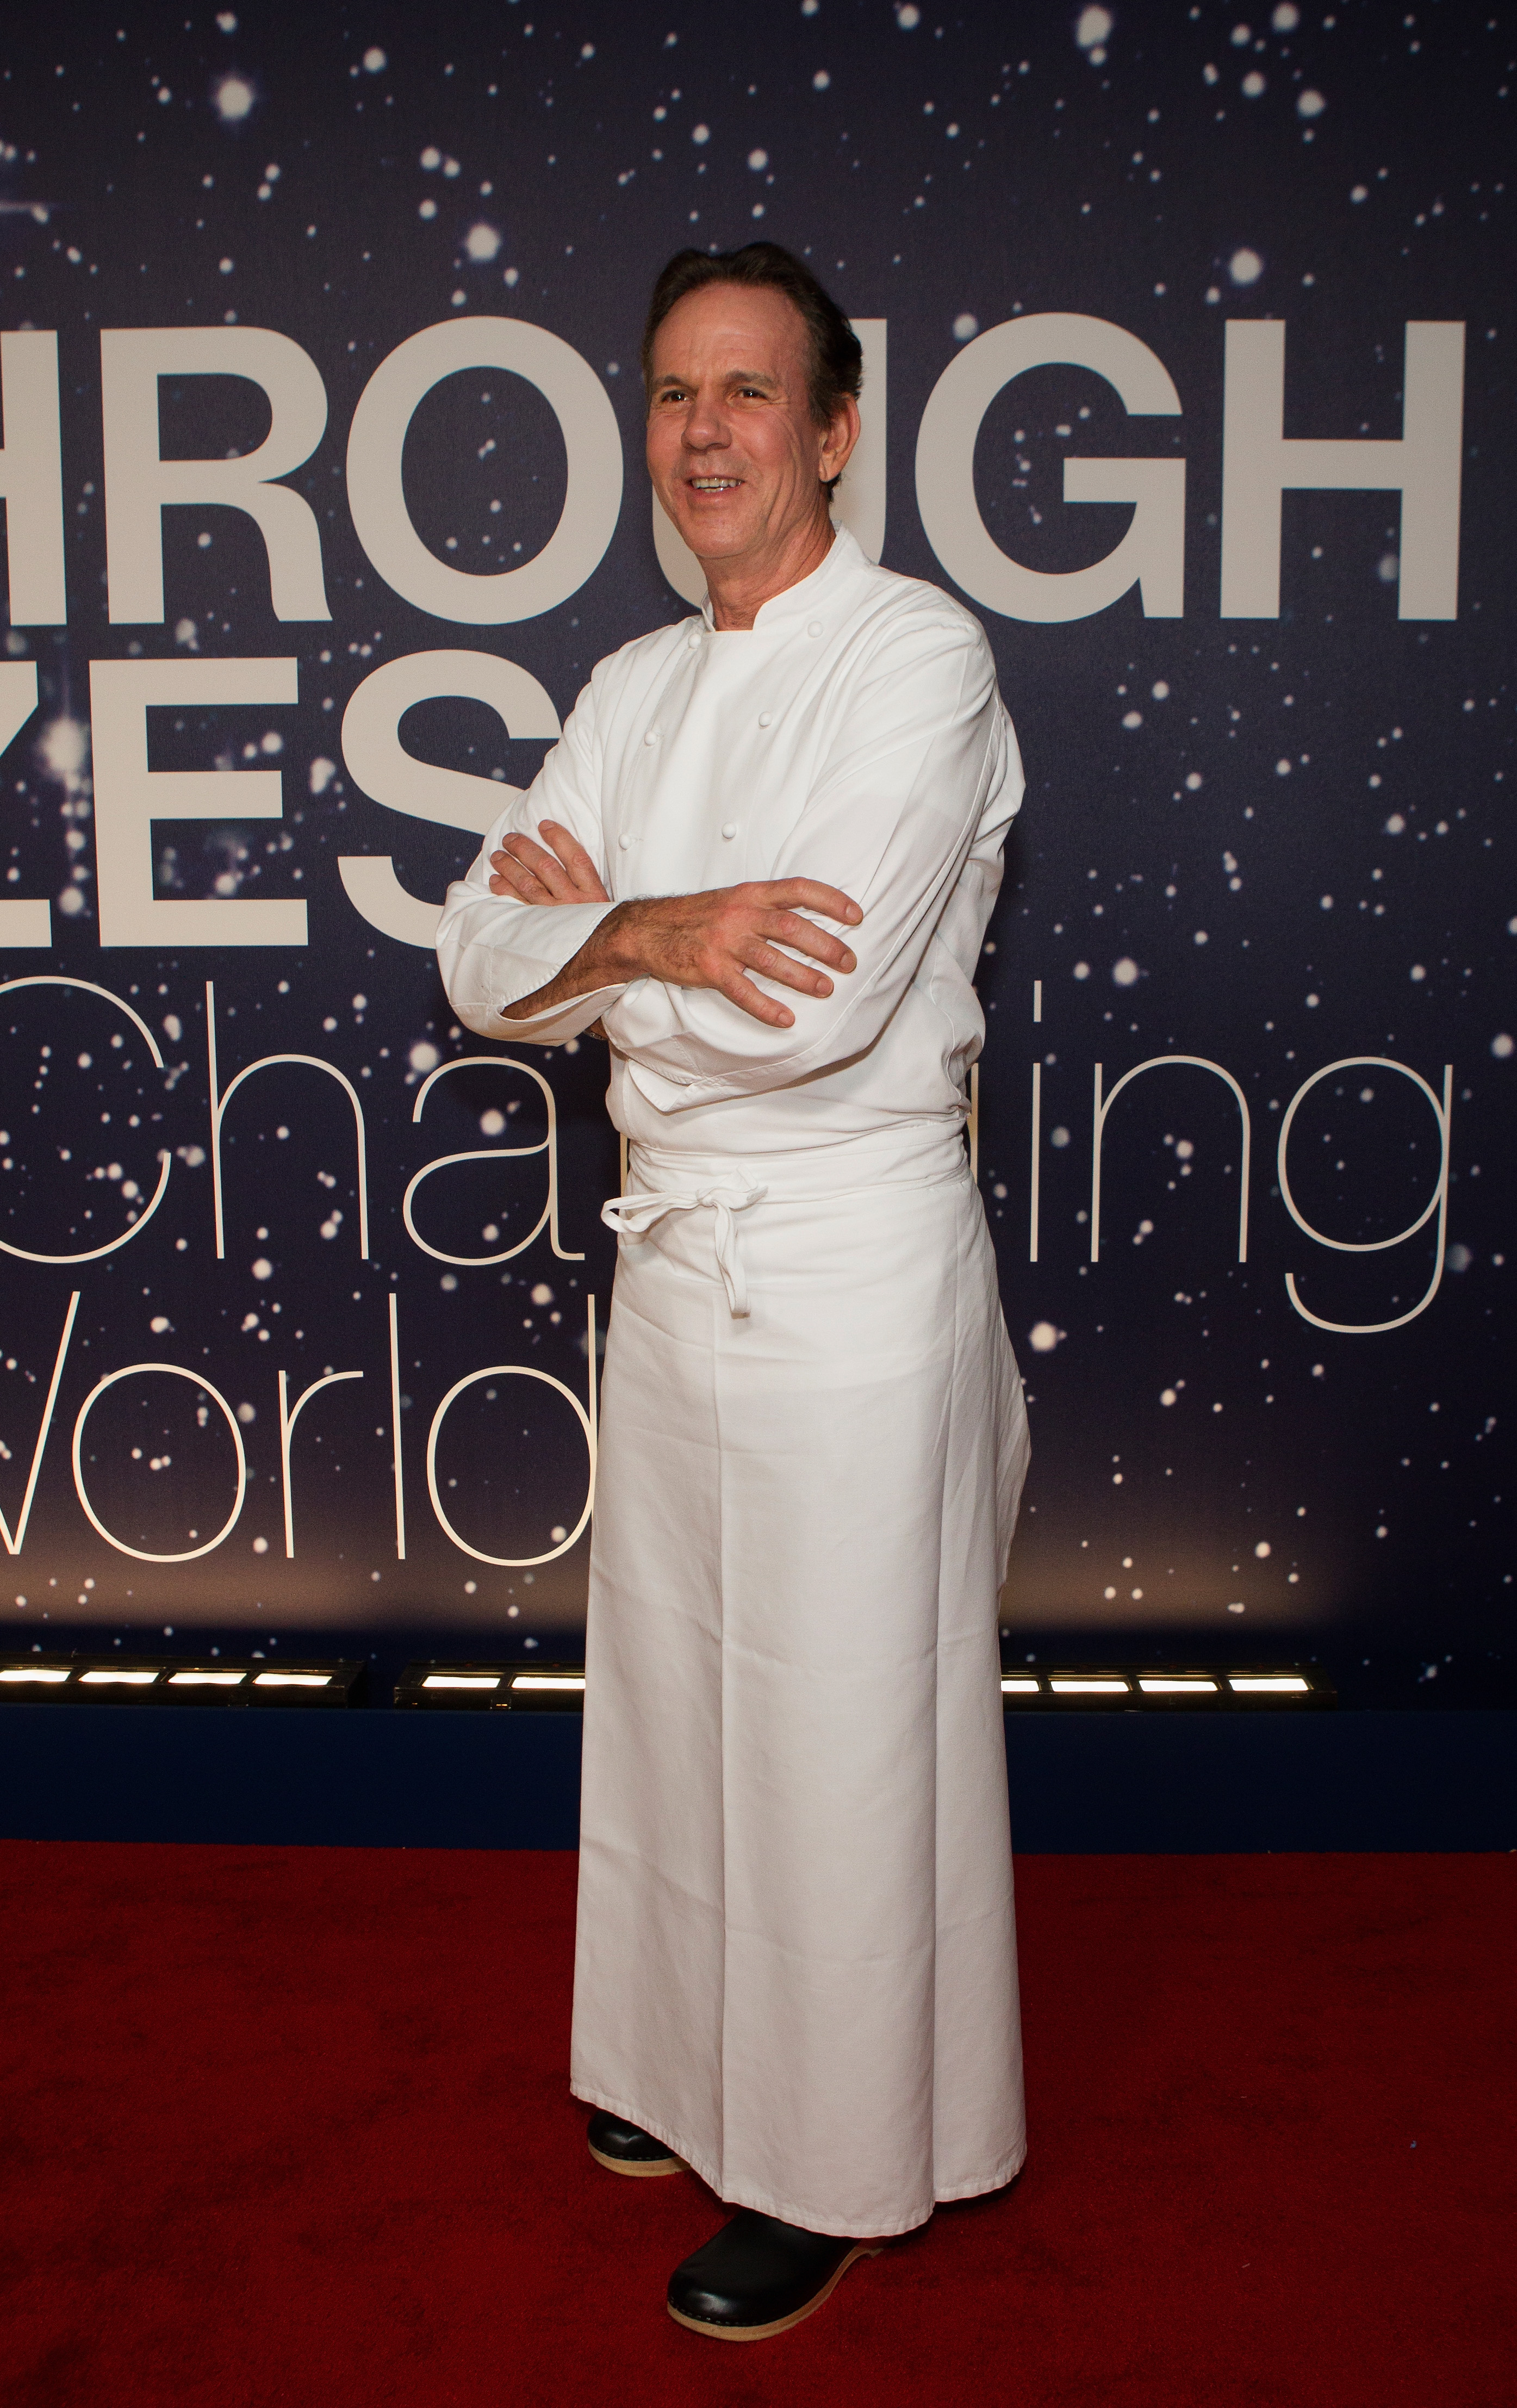 Thomas Keller Cleared of Legal Wrongdoing in Pregnancy Discrimination Suit